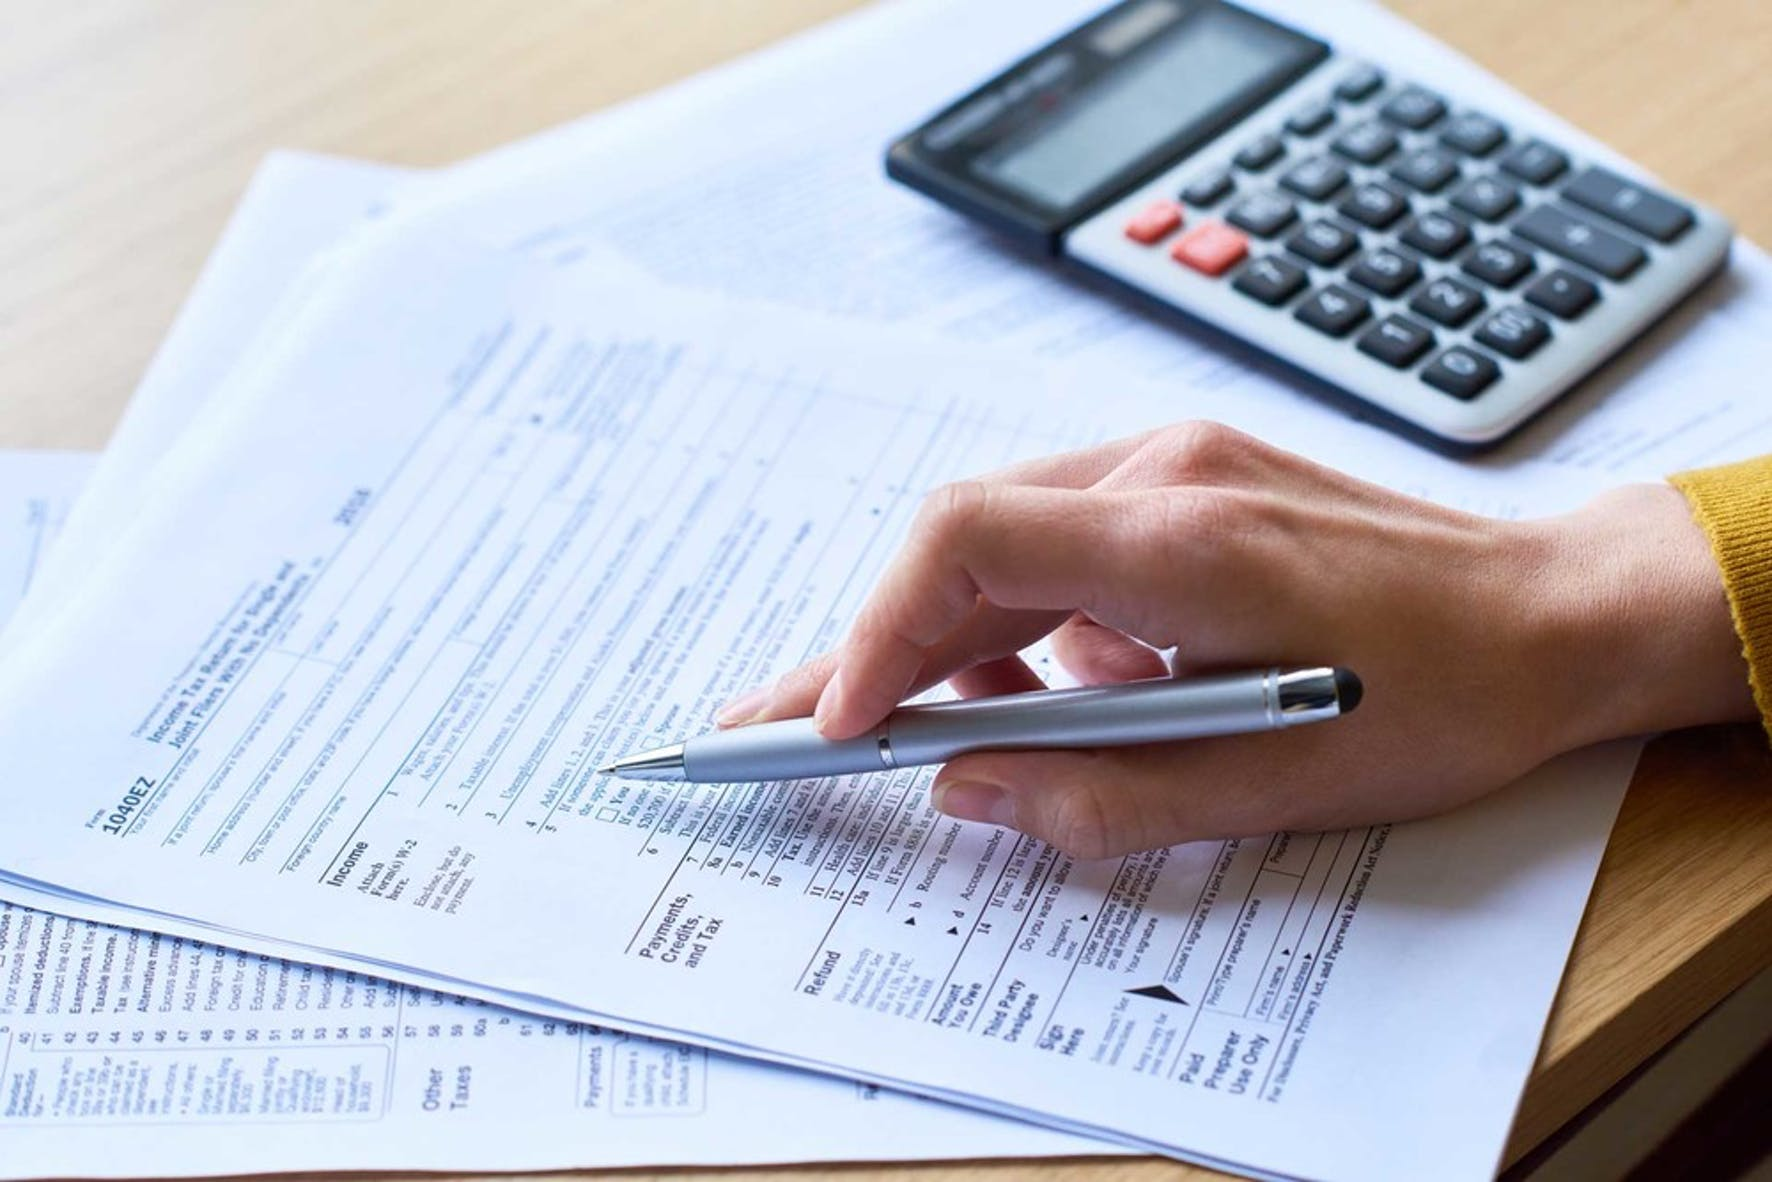 Determining how much small business tax is owed using IRS forms and a calculator